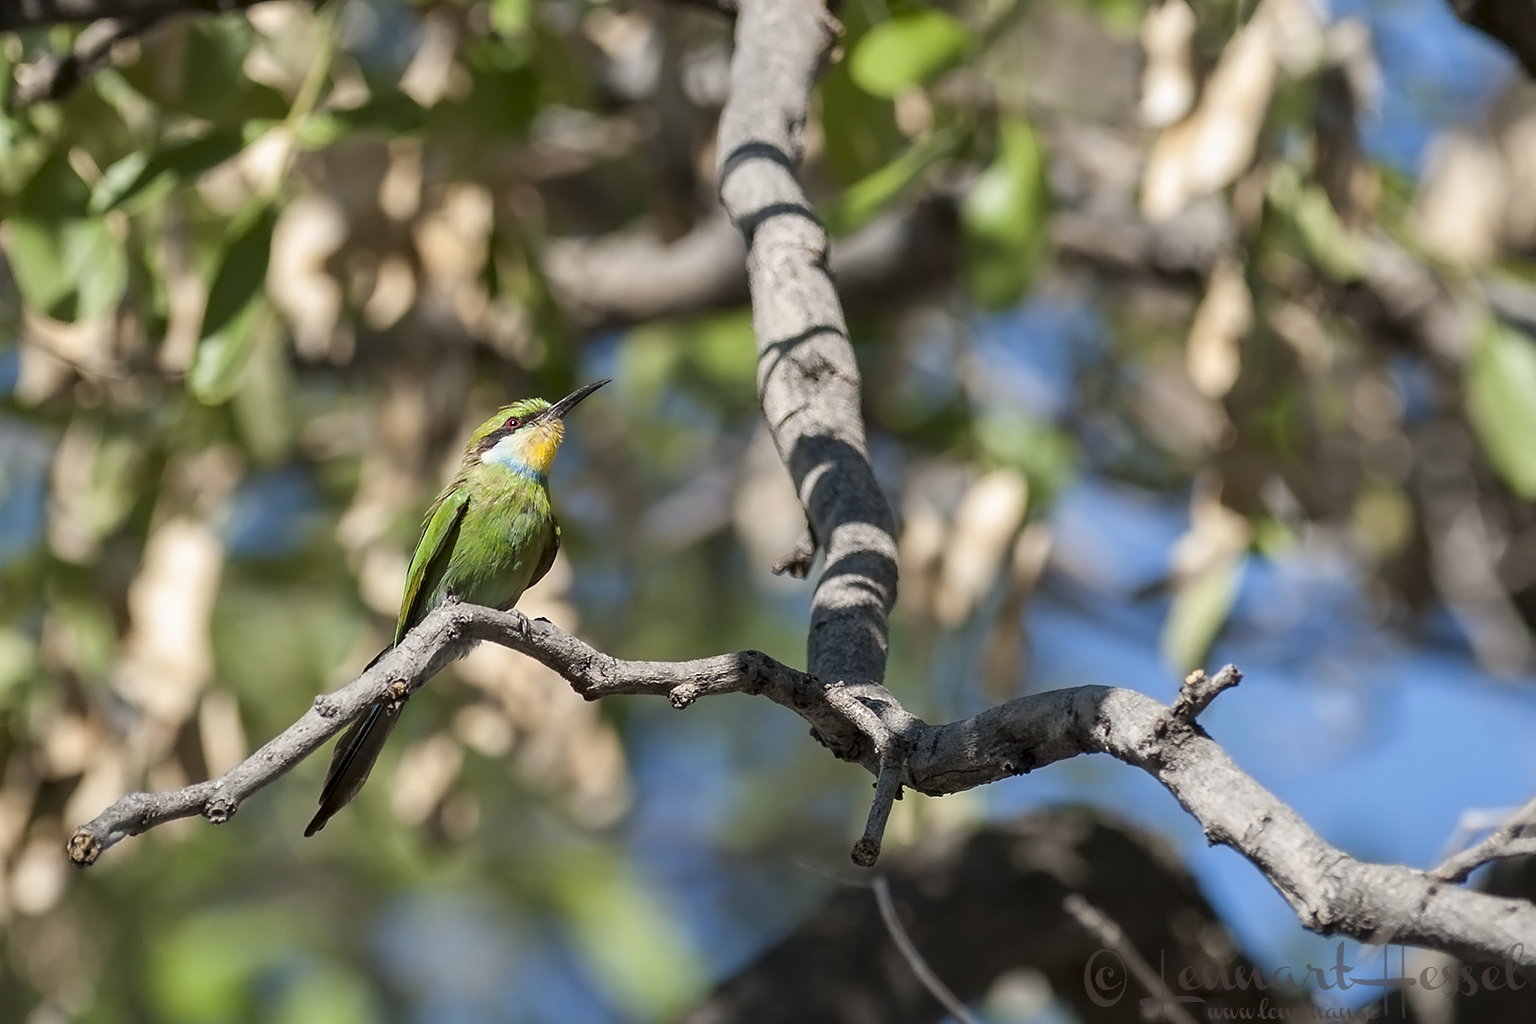 Swallow-tailed Bee-eater in Moremi Game Reserve, Botswana